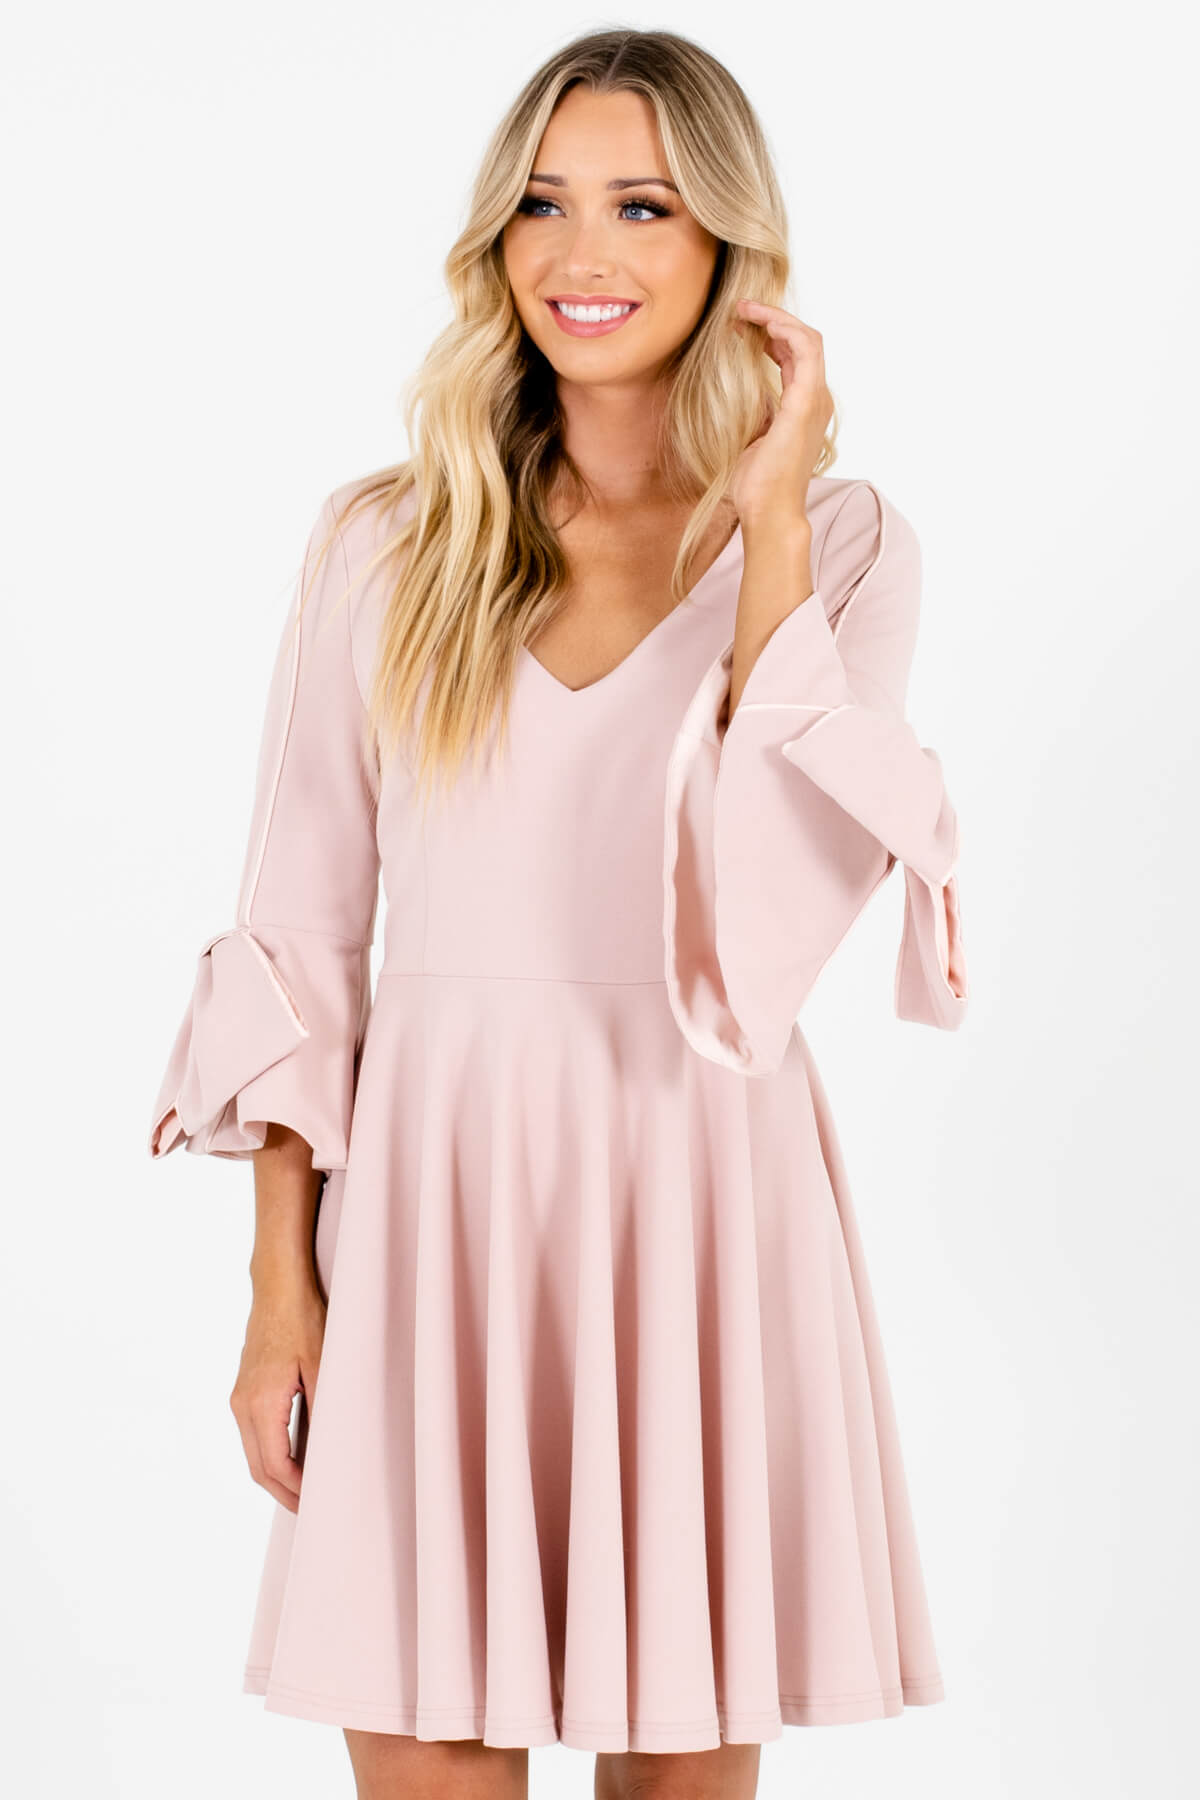 Blush Pink Thick Pleated Bow Sleeve Mini Dresses for Women